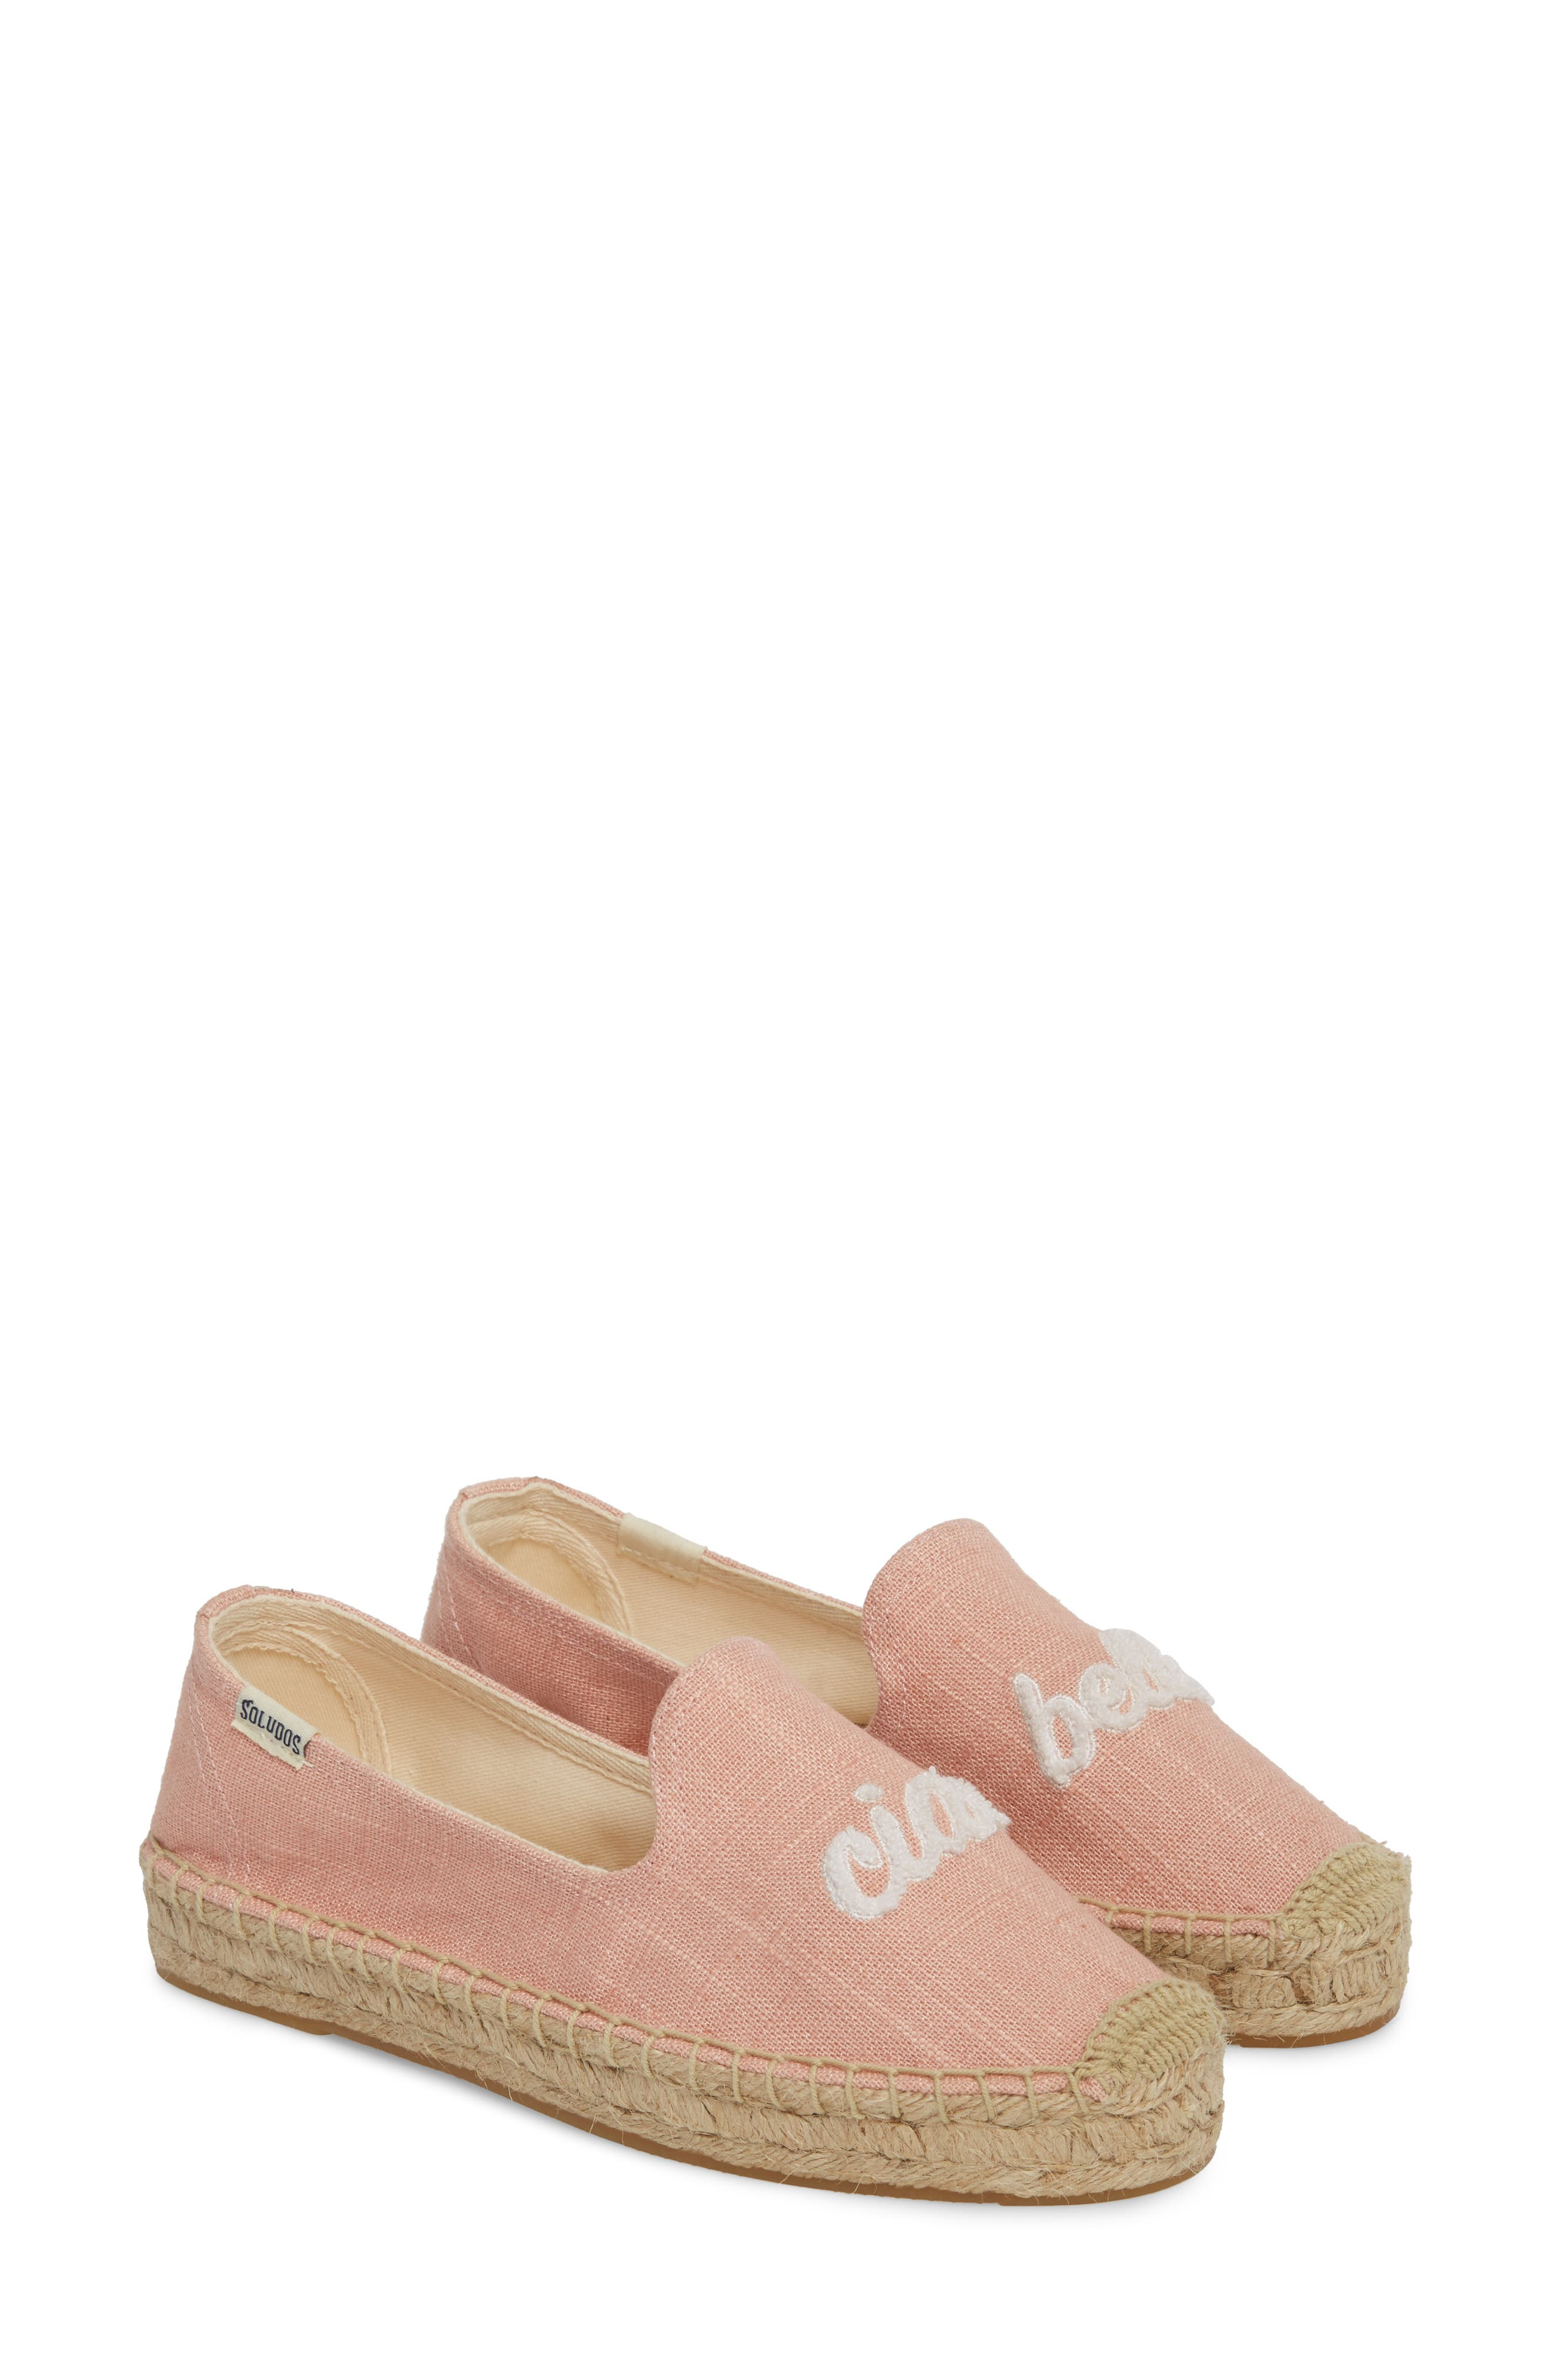 Alternate Image 3  - Soludos Ciao Bella Espadrille Flat (Women)